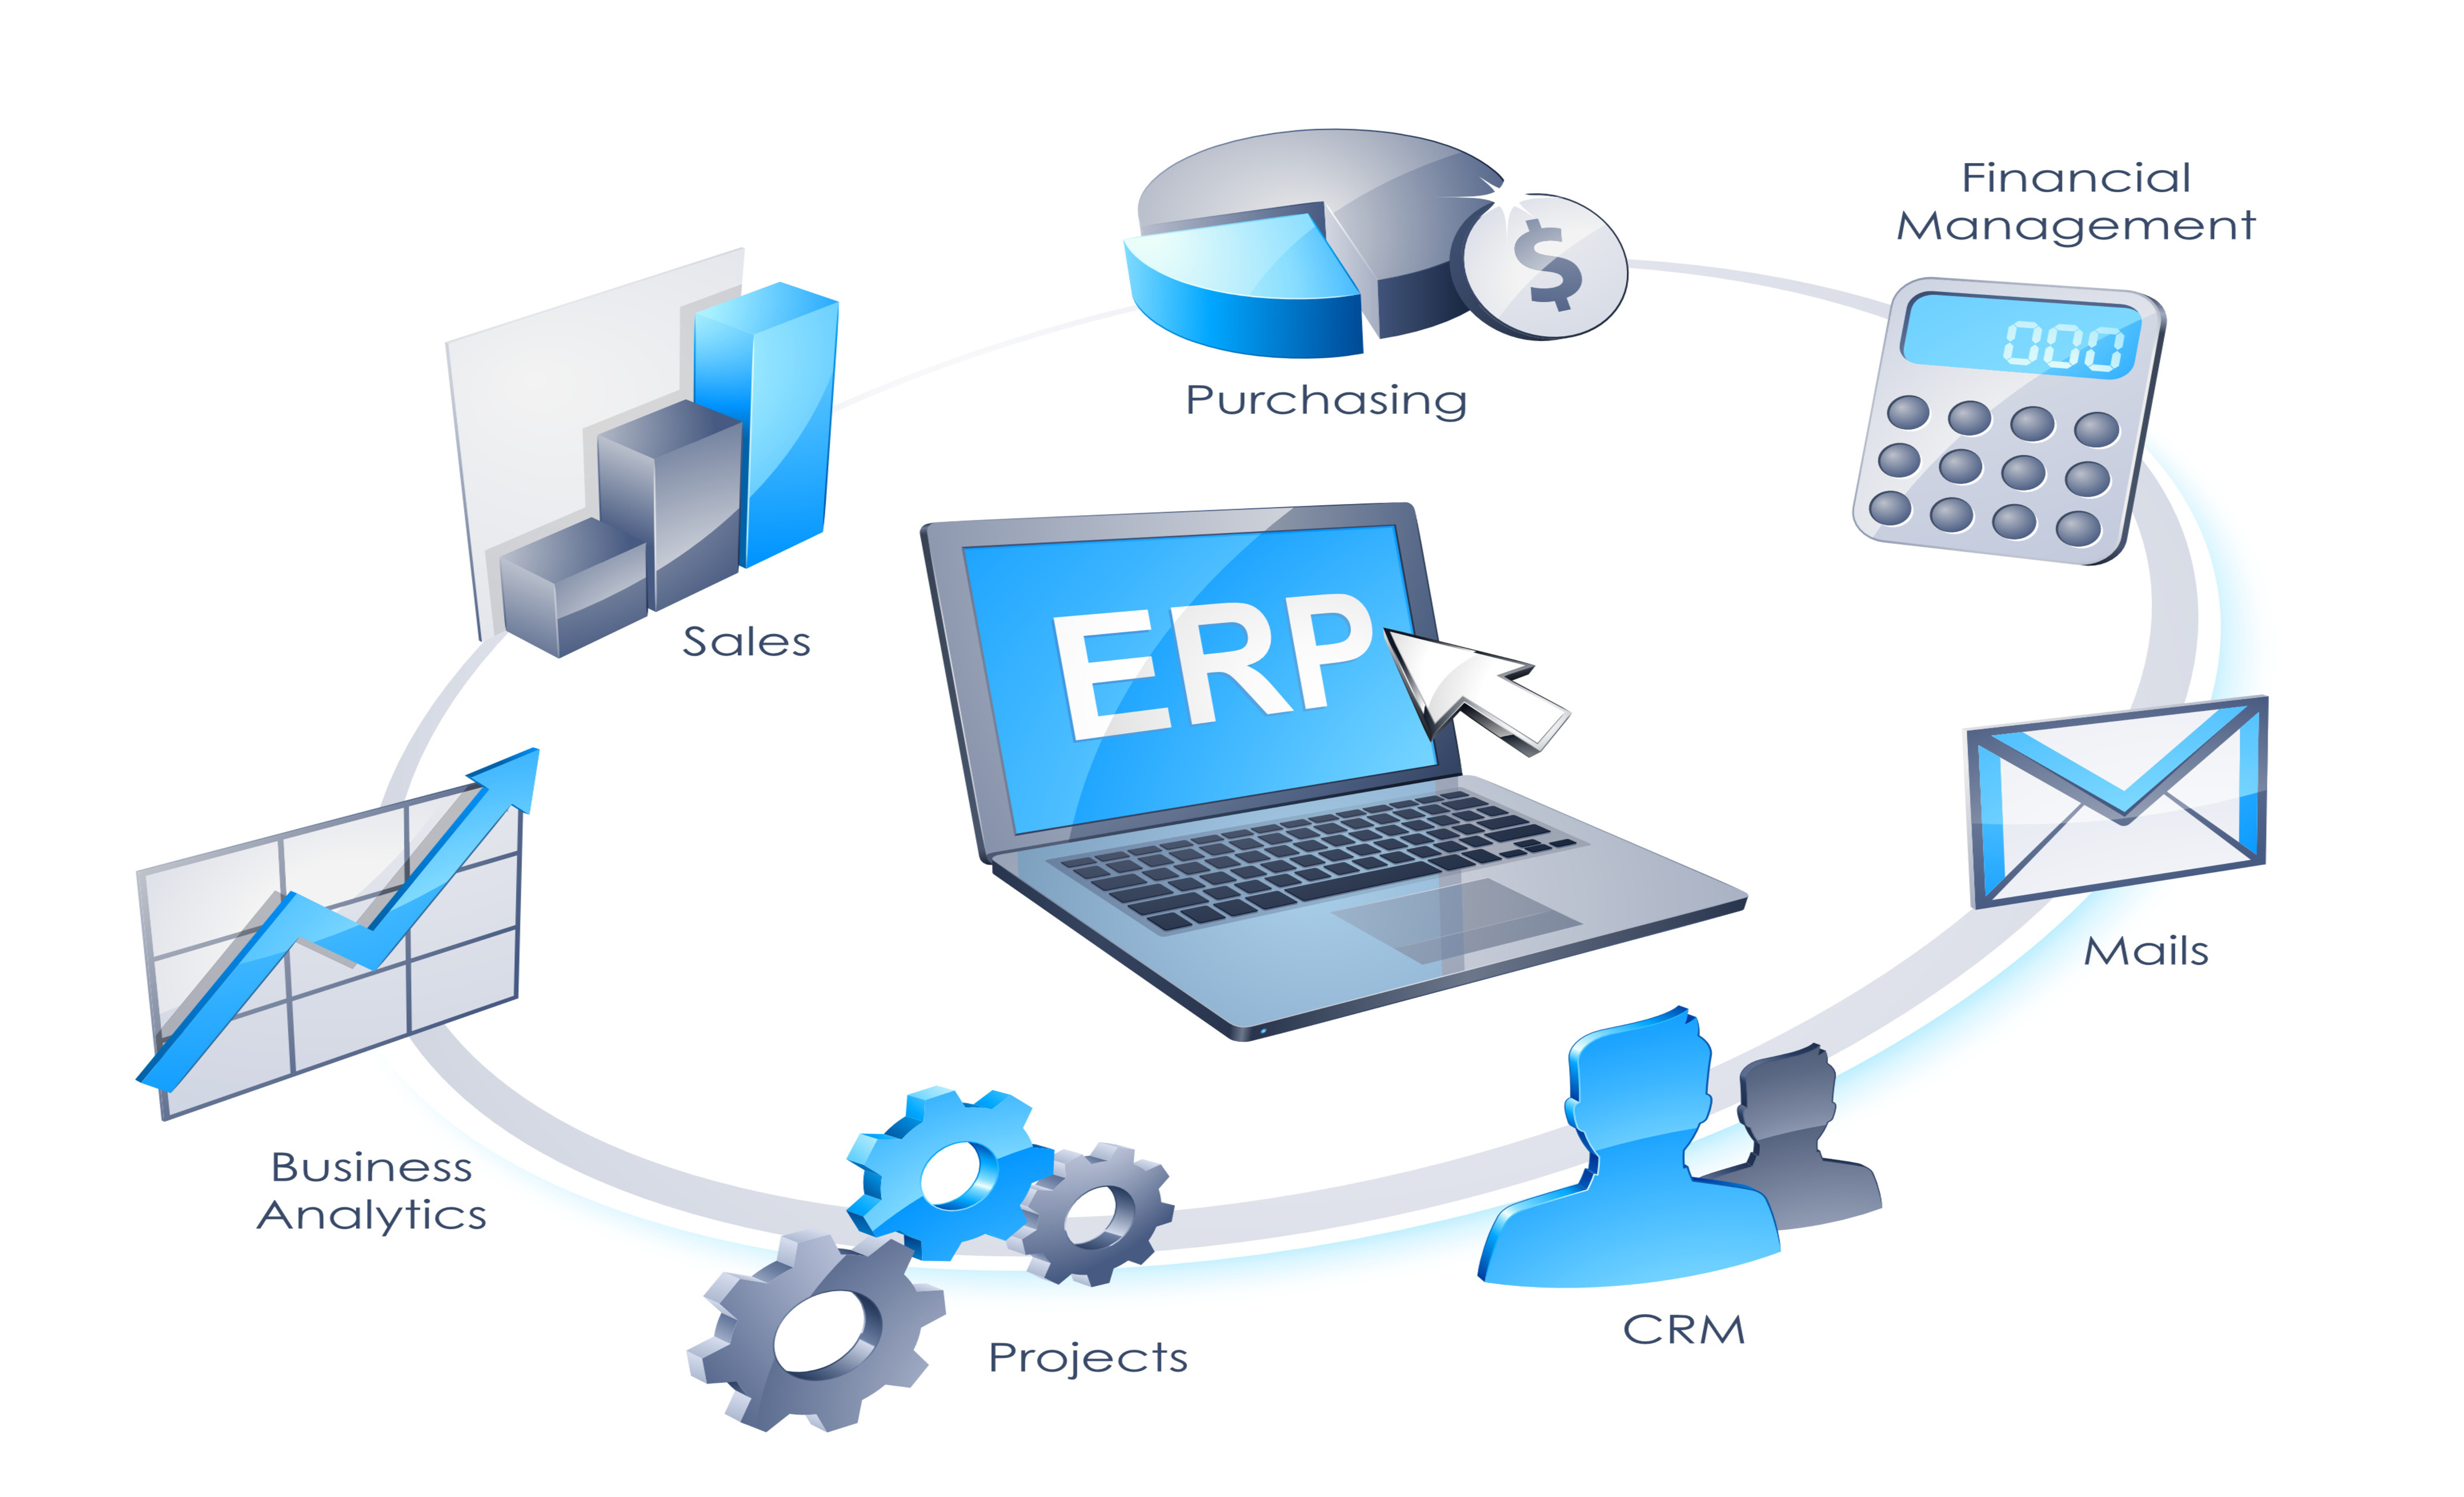 Enterprise resource planning (ERP) is a category of business ...